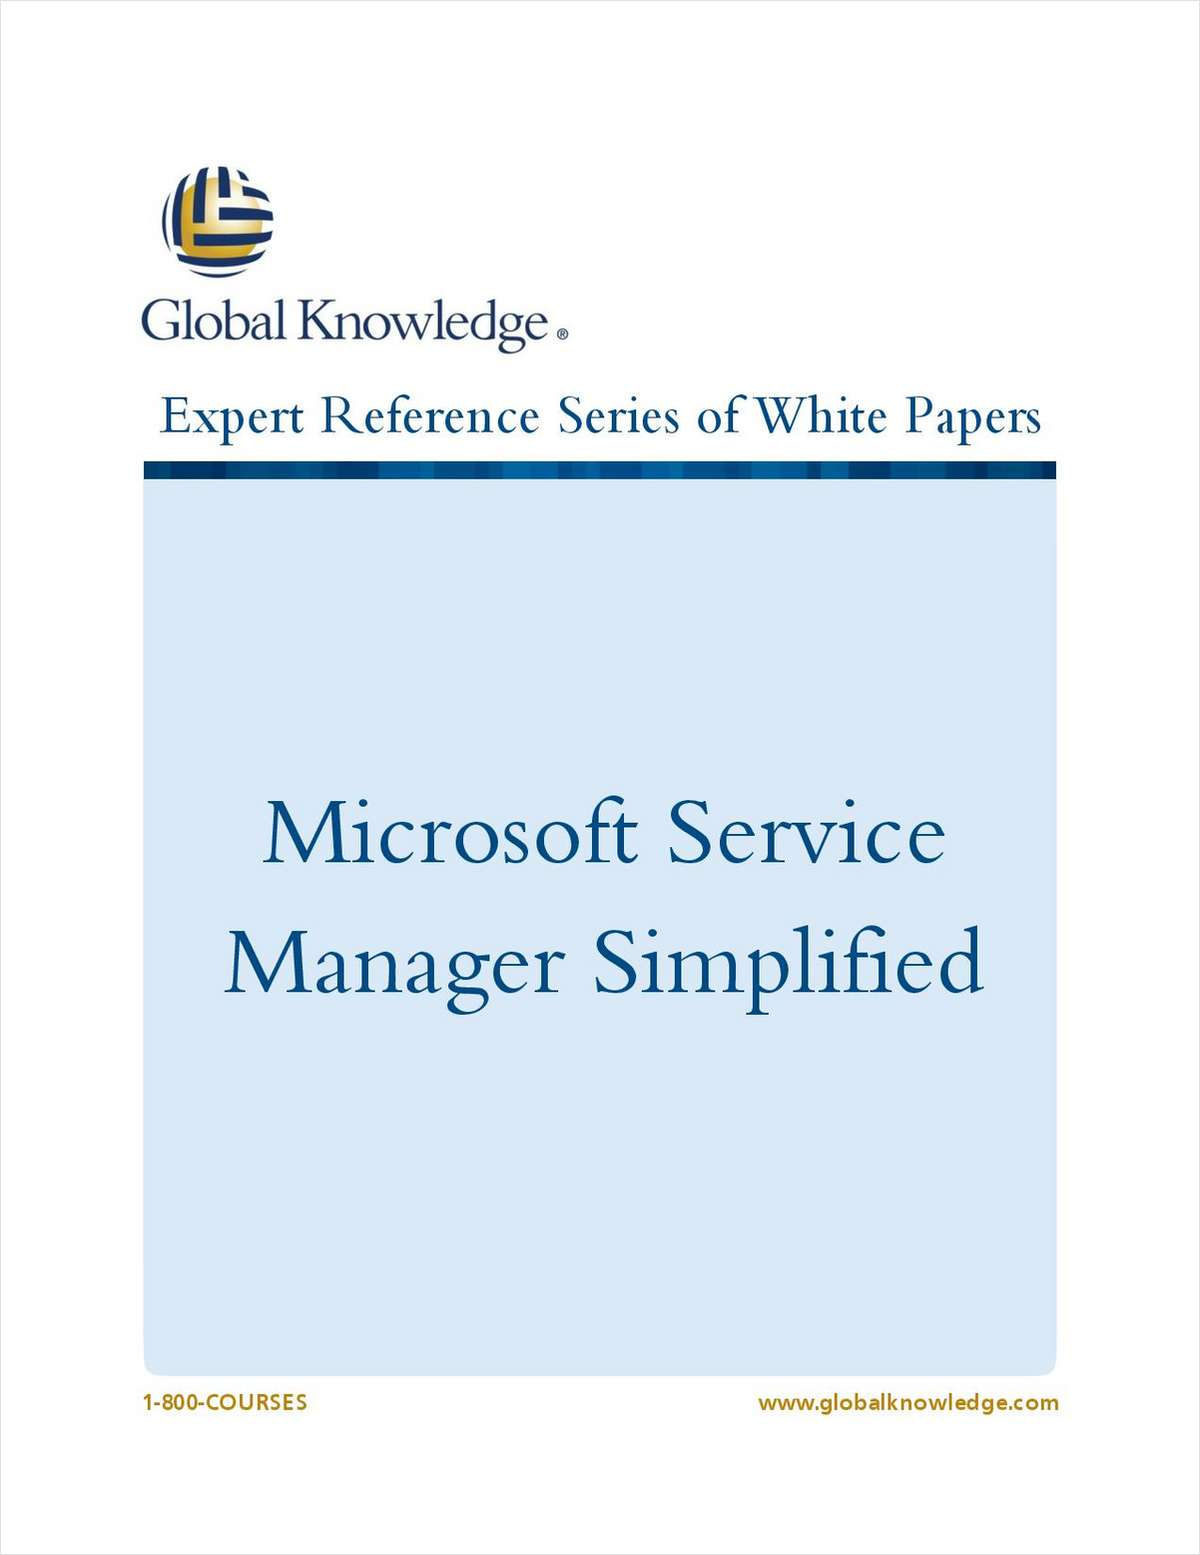 Microsoft Service Manager Simplified